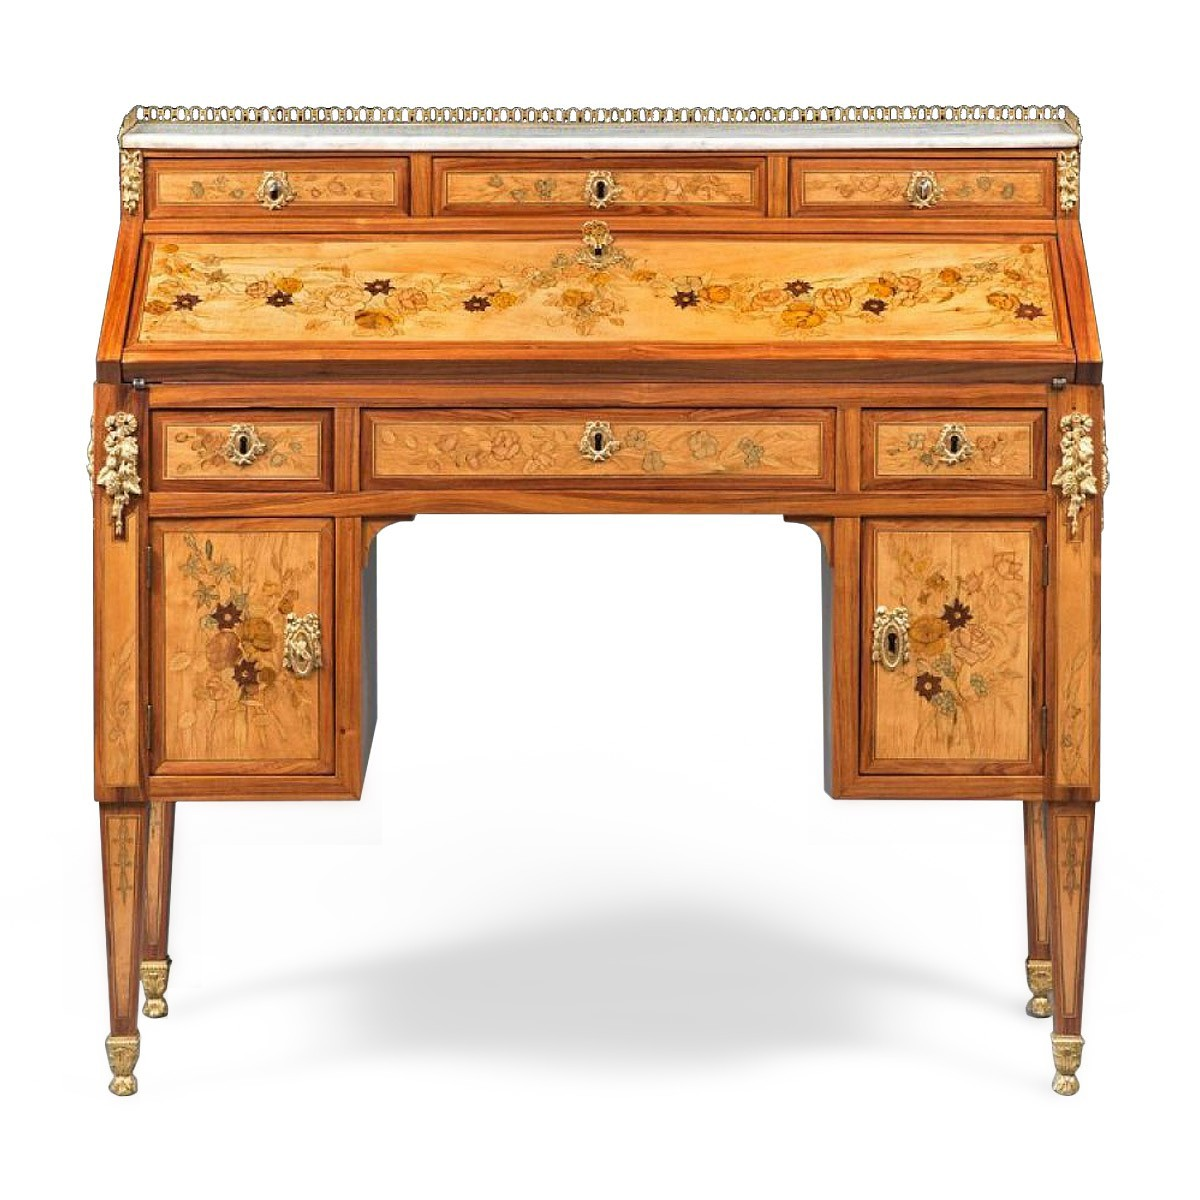 A louis xvi floral marquetry bureau en pente by topino for Bureau louis xvi